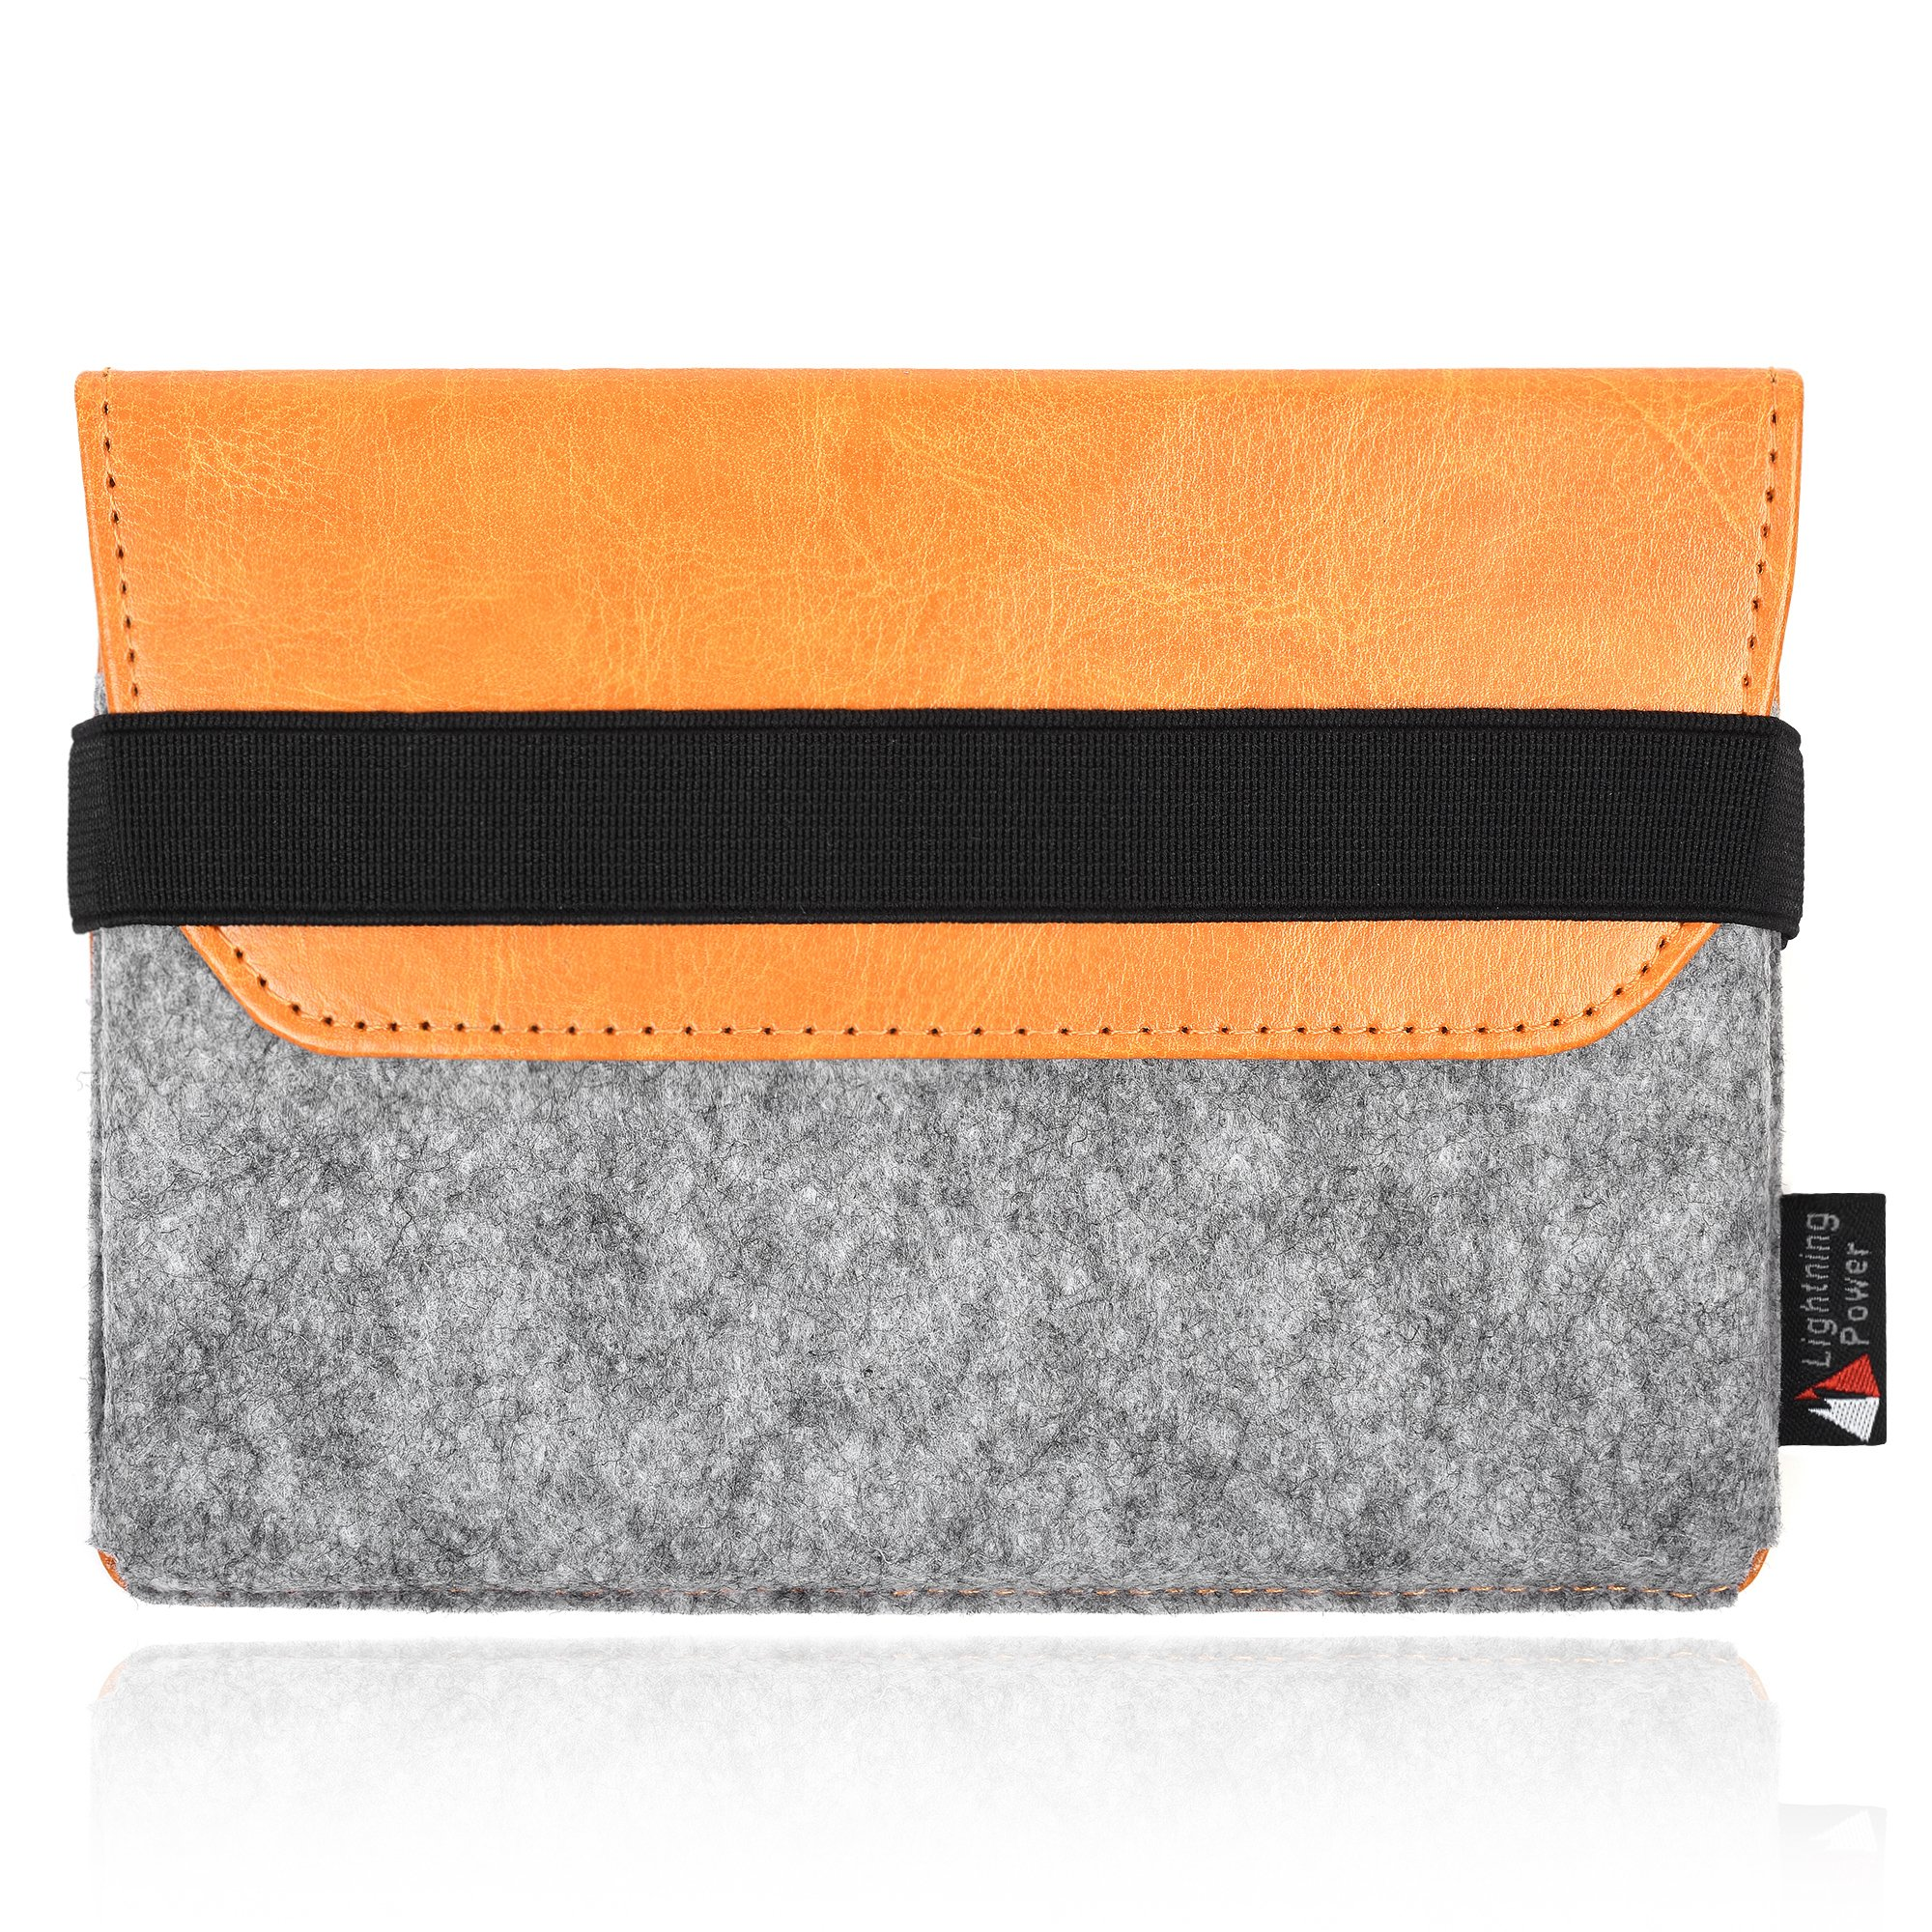 TXEsign Premium Felt PU Leather Protection Sleeve Travel Carrying Case Compatible with Apple Magic Trackpad 2 MJ2R2LL/A